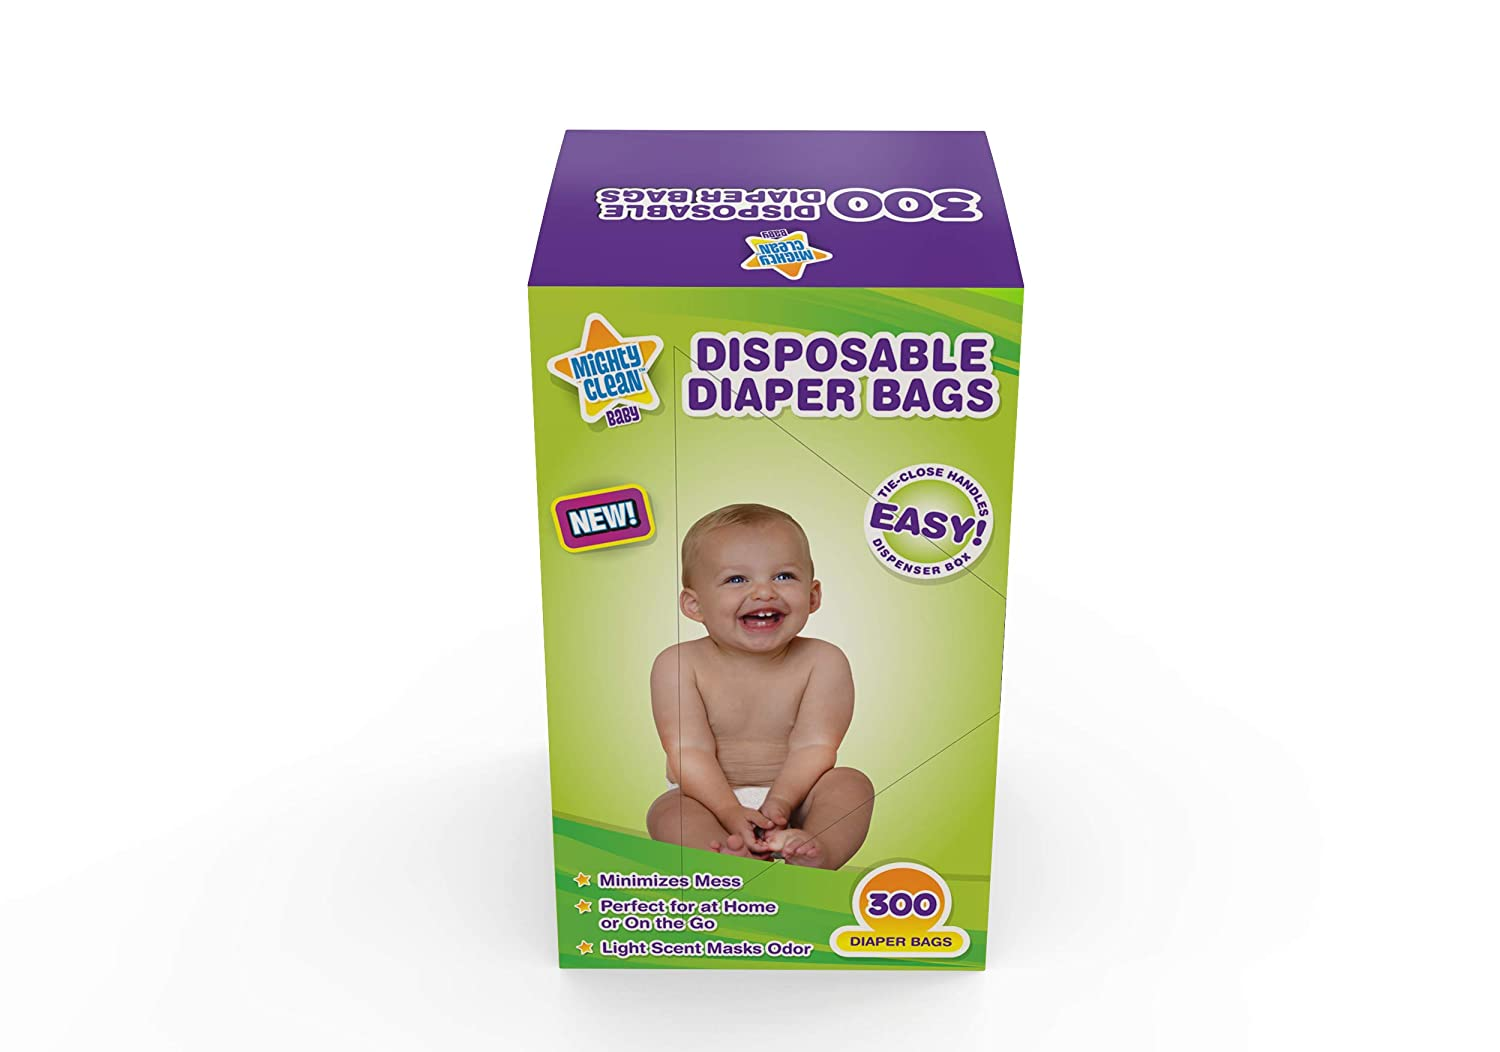 100/% Biodegradable Diaper Sacks with Lavender Scent /& Added Baking Soda to Absorb Odors Blue 400 Count Tadge Goods Baby Disposable Diaper Bags